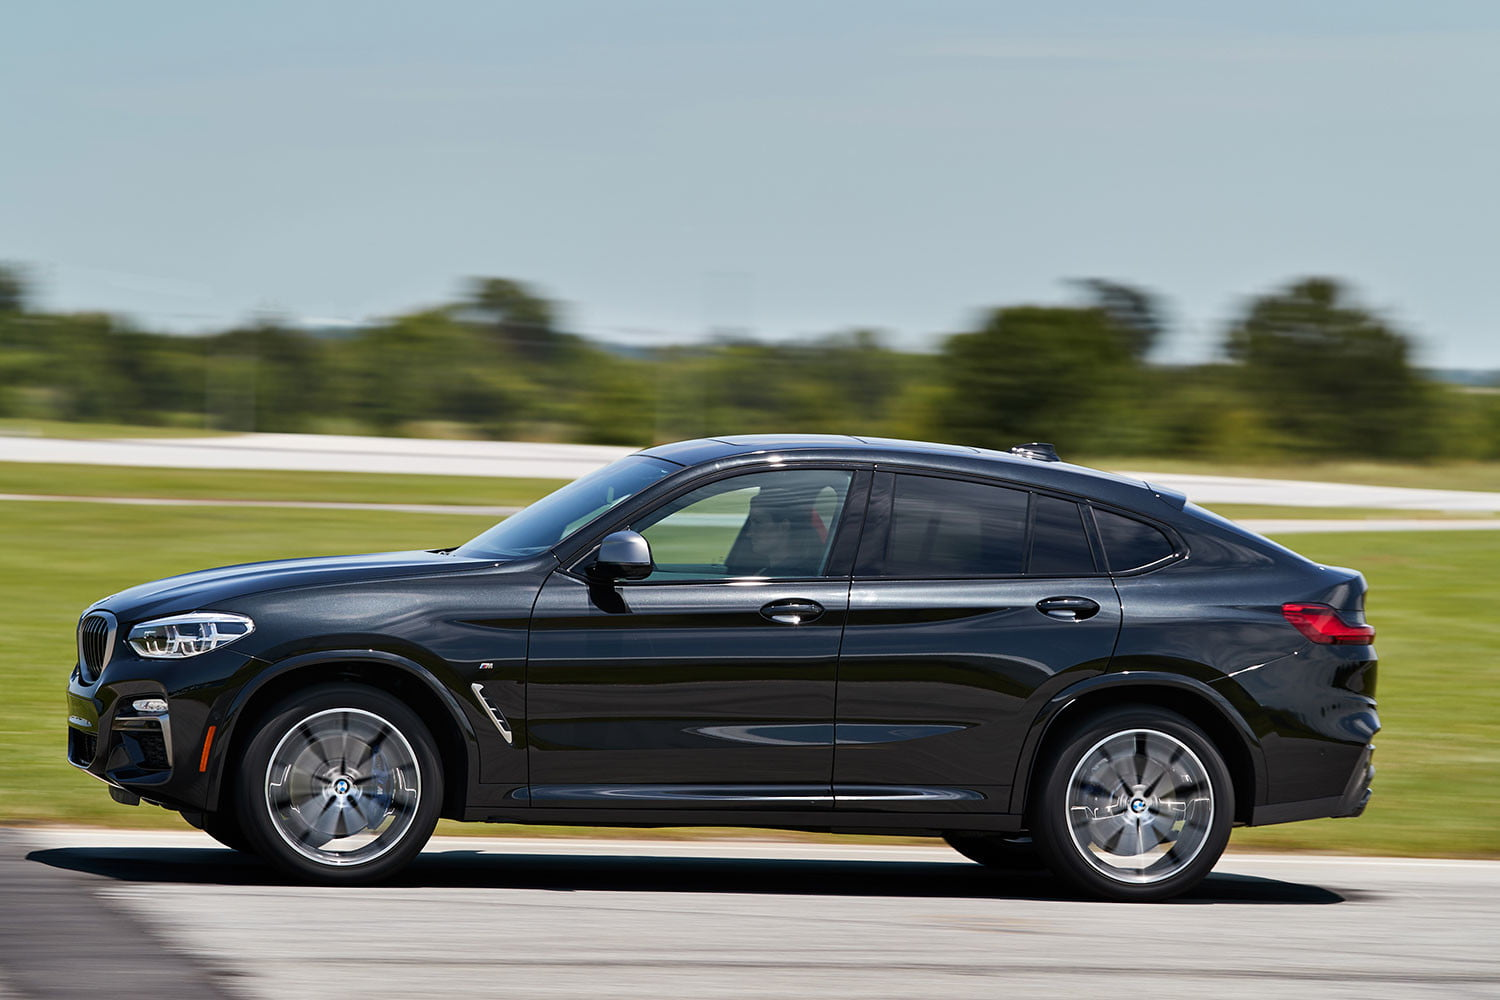 2019 BMW X4 M40i First Drive Review | Digital Trends